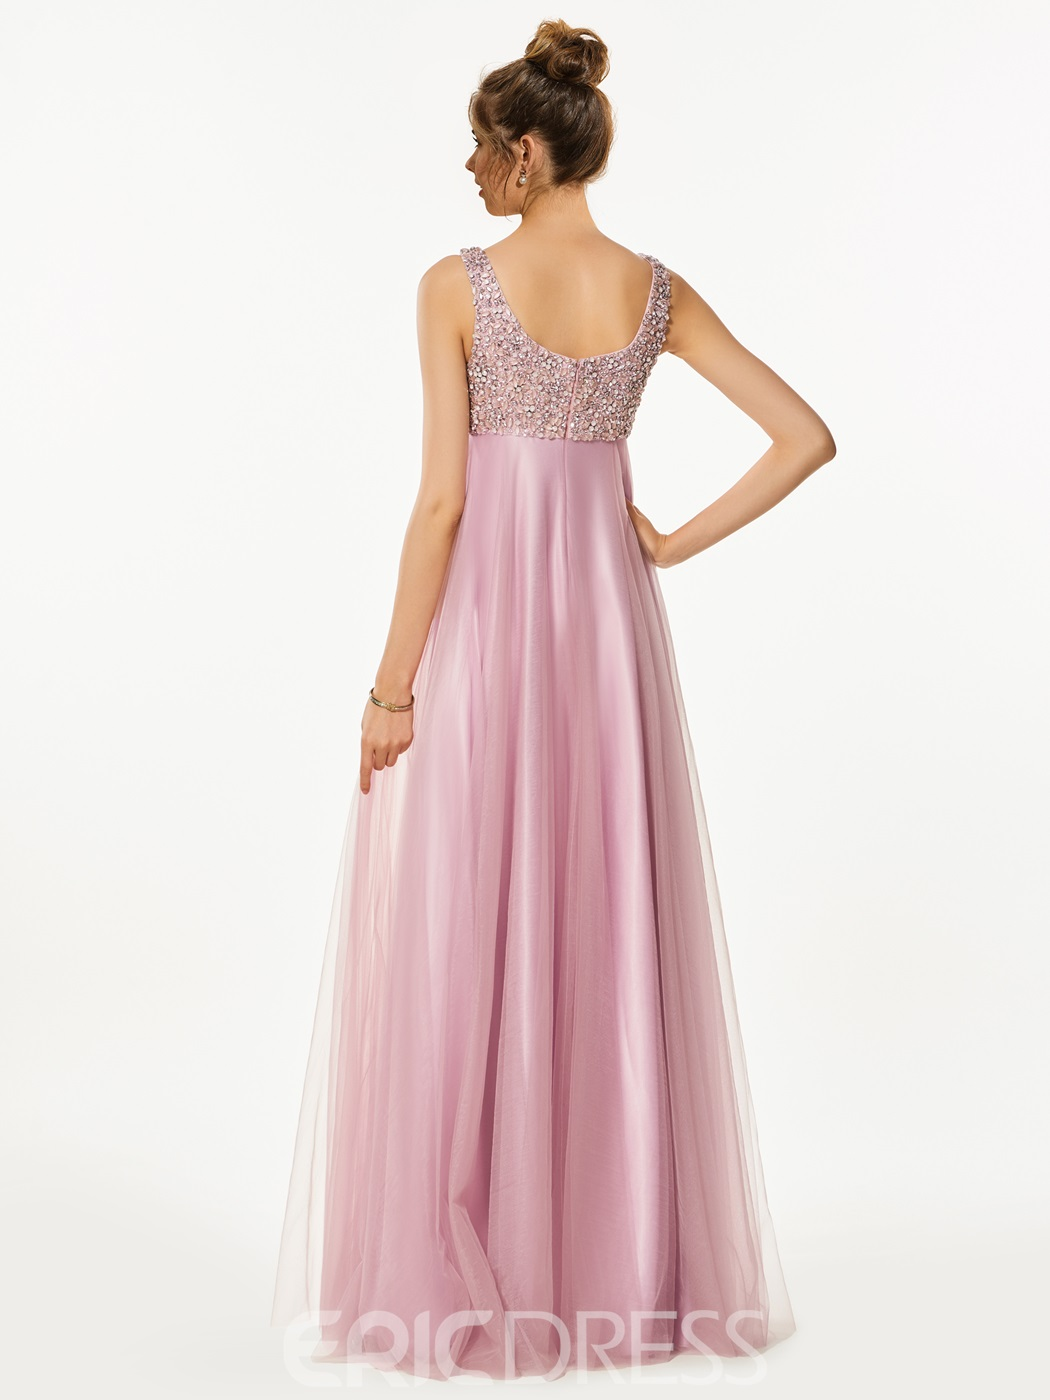 Ericdress A-Line Empire Straps Beading Floor-Length Prom Dress